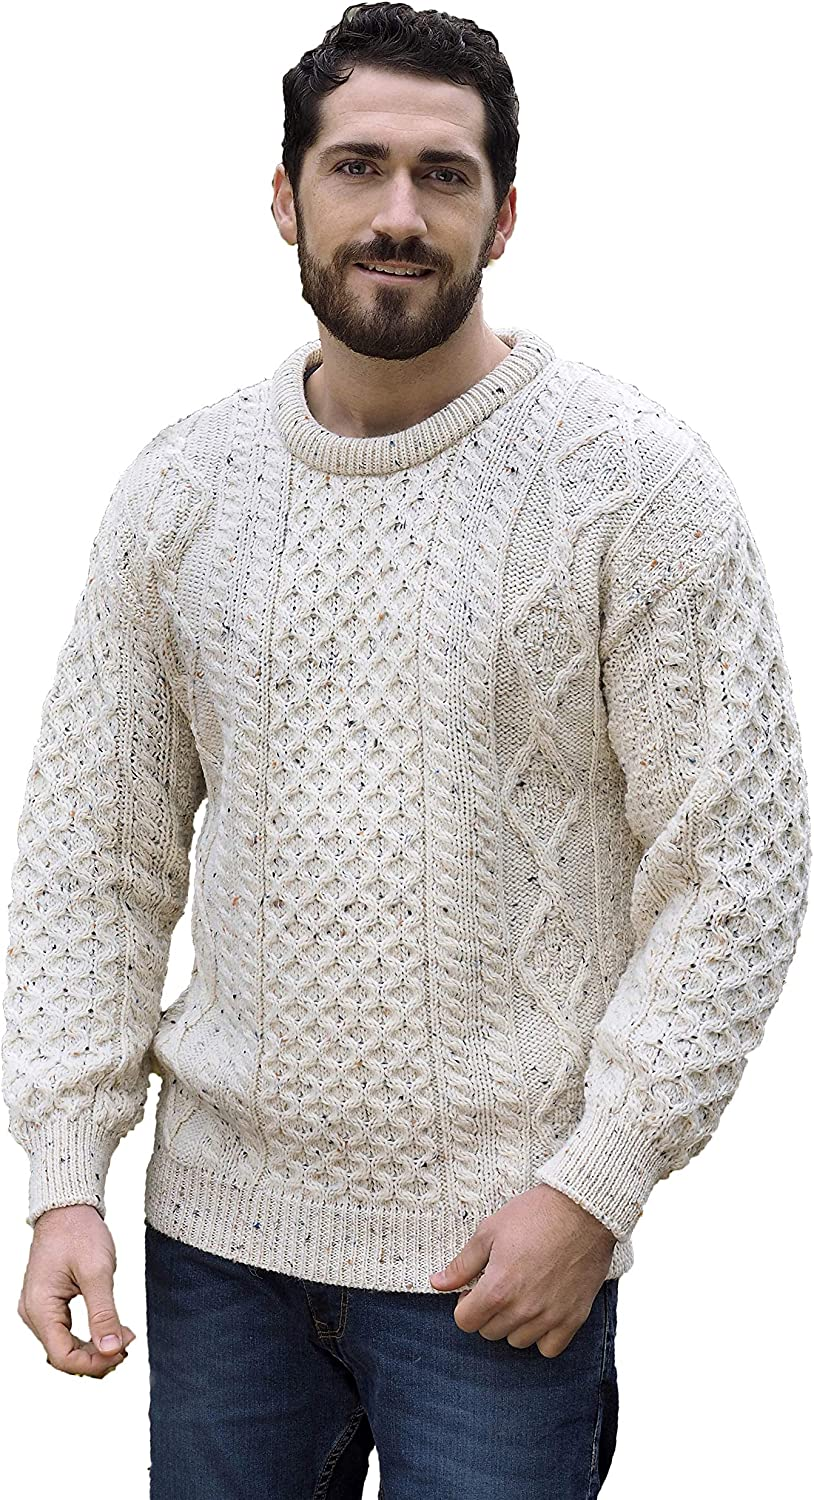 100/% Pure New Wool Aran Crafts Irish Soft Cable Knitted Crew Neck Sweater